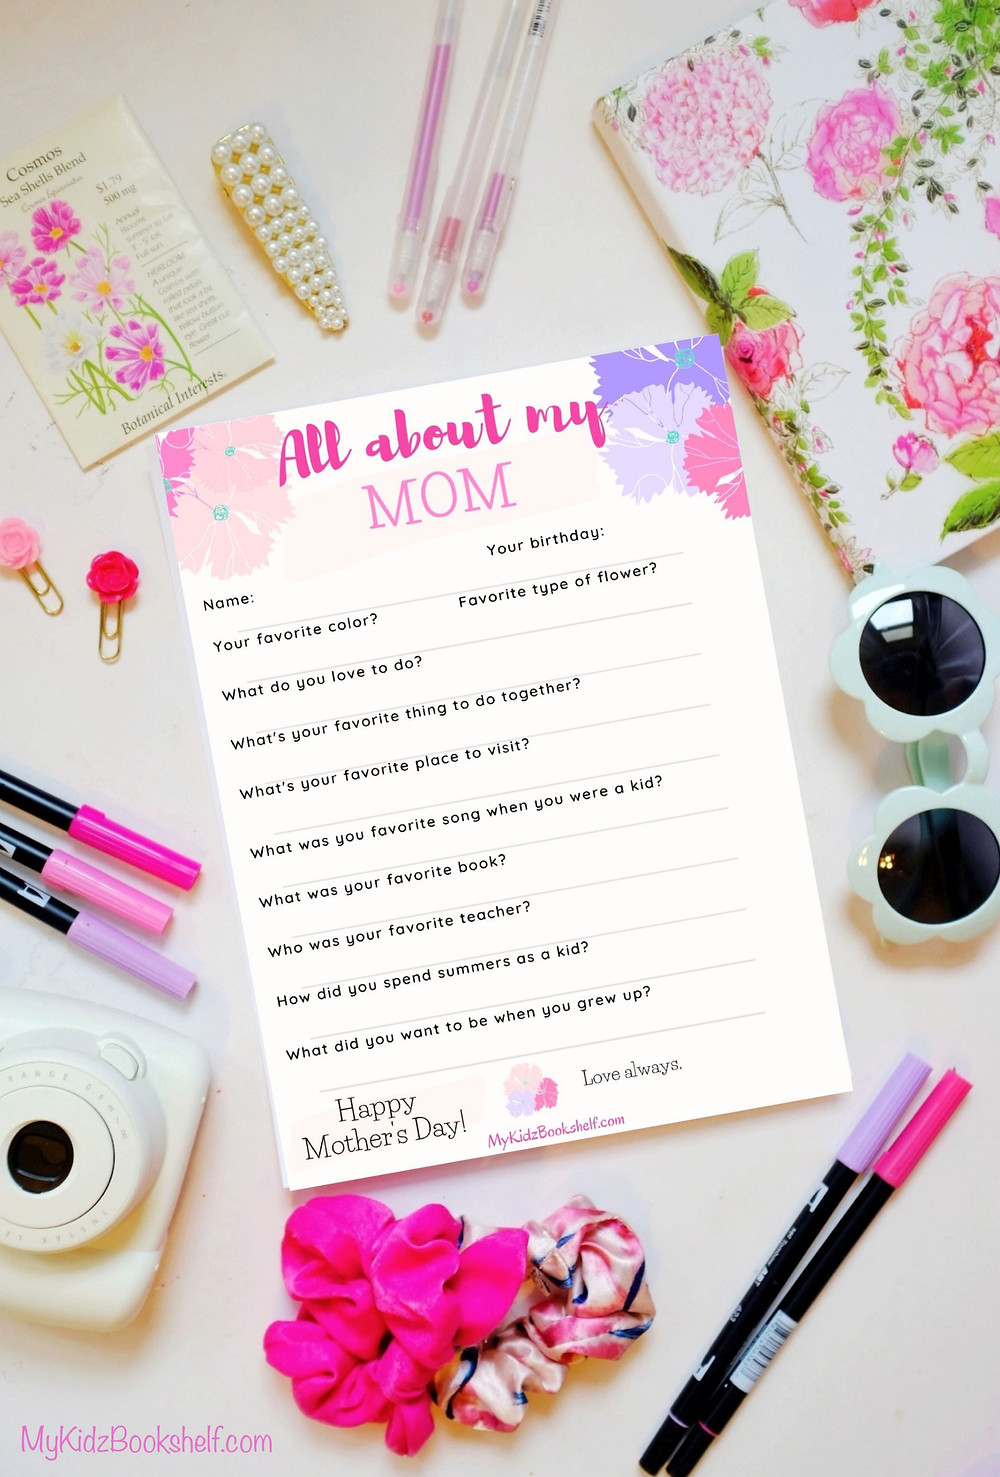 All about my mom Happy Mother's Day printable free